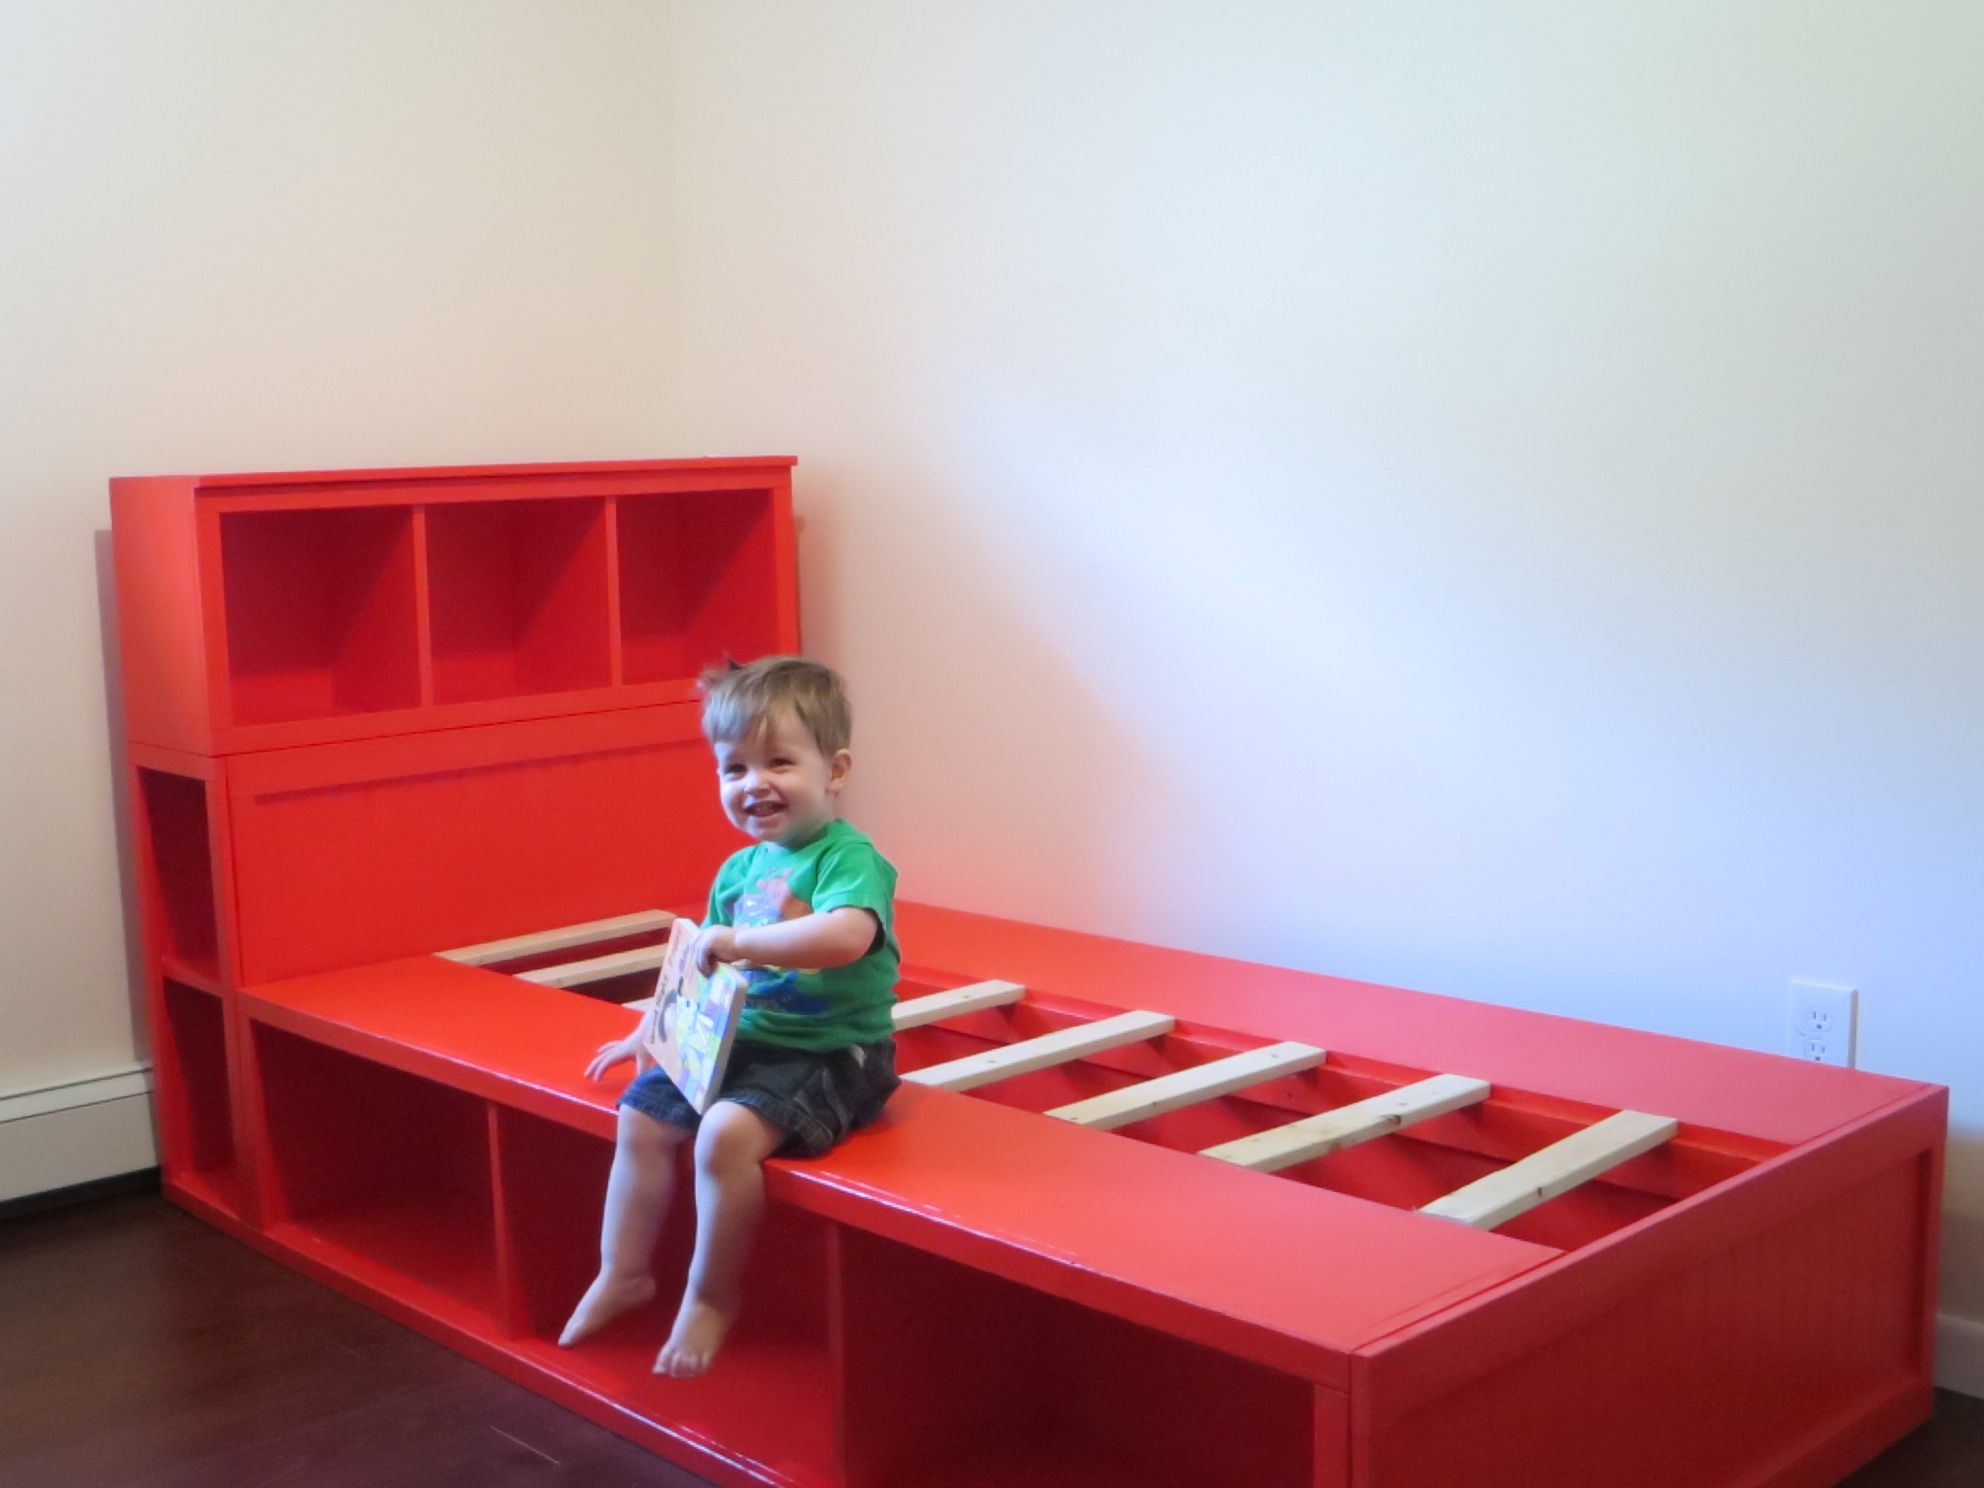 Diy Storage Bed With Headboard Free Plans From Ana Whitecom Kids